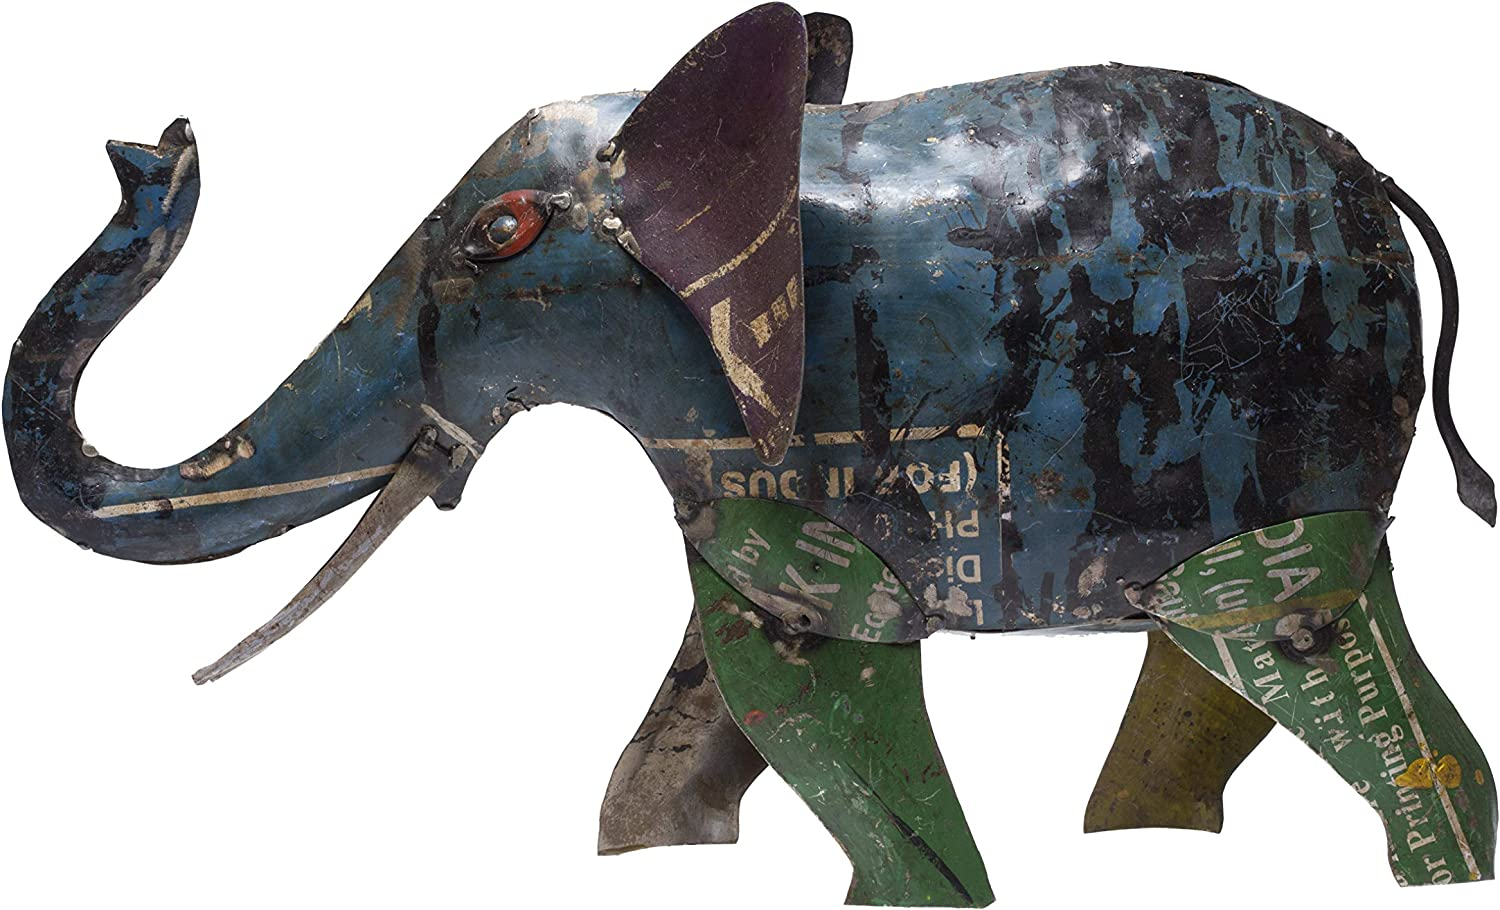 De Kulture Recycled Iron Elephant Figure Showpiece 18x3.5x10 (LWH) for Home Decoration Living Room Ideal for New Year Birthday Easter Gift (Multicolour)